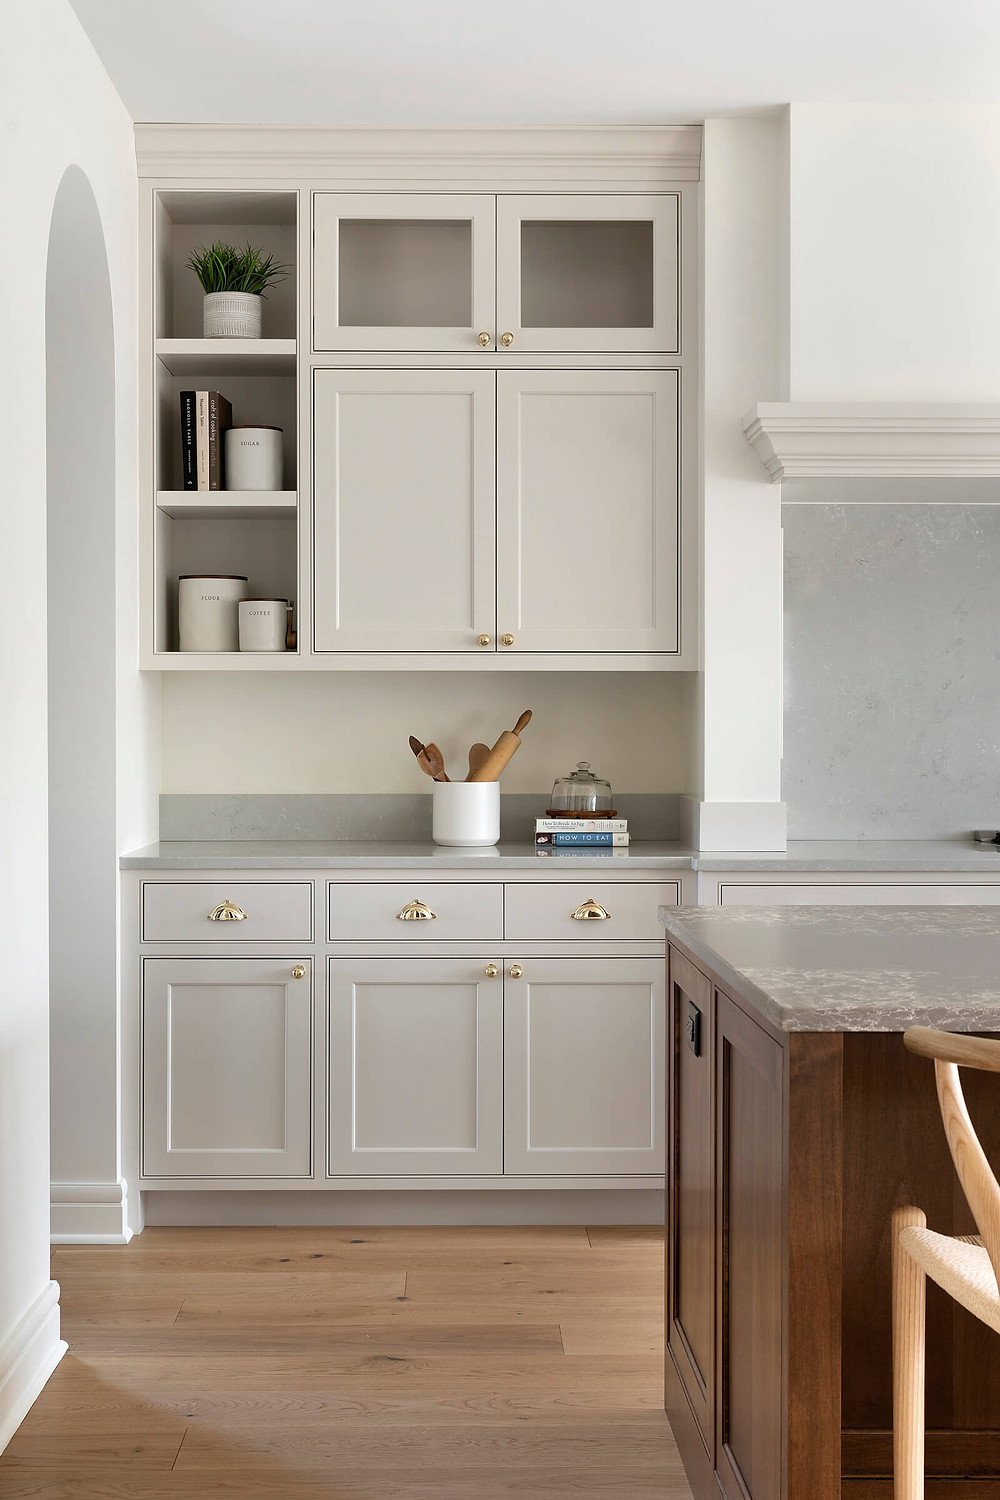 Custom inset kitchen cabinets in beautiful mushroom taupe beige paint with open shelf detail and engineered white oak flooring.